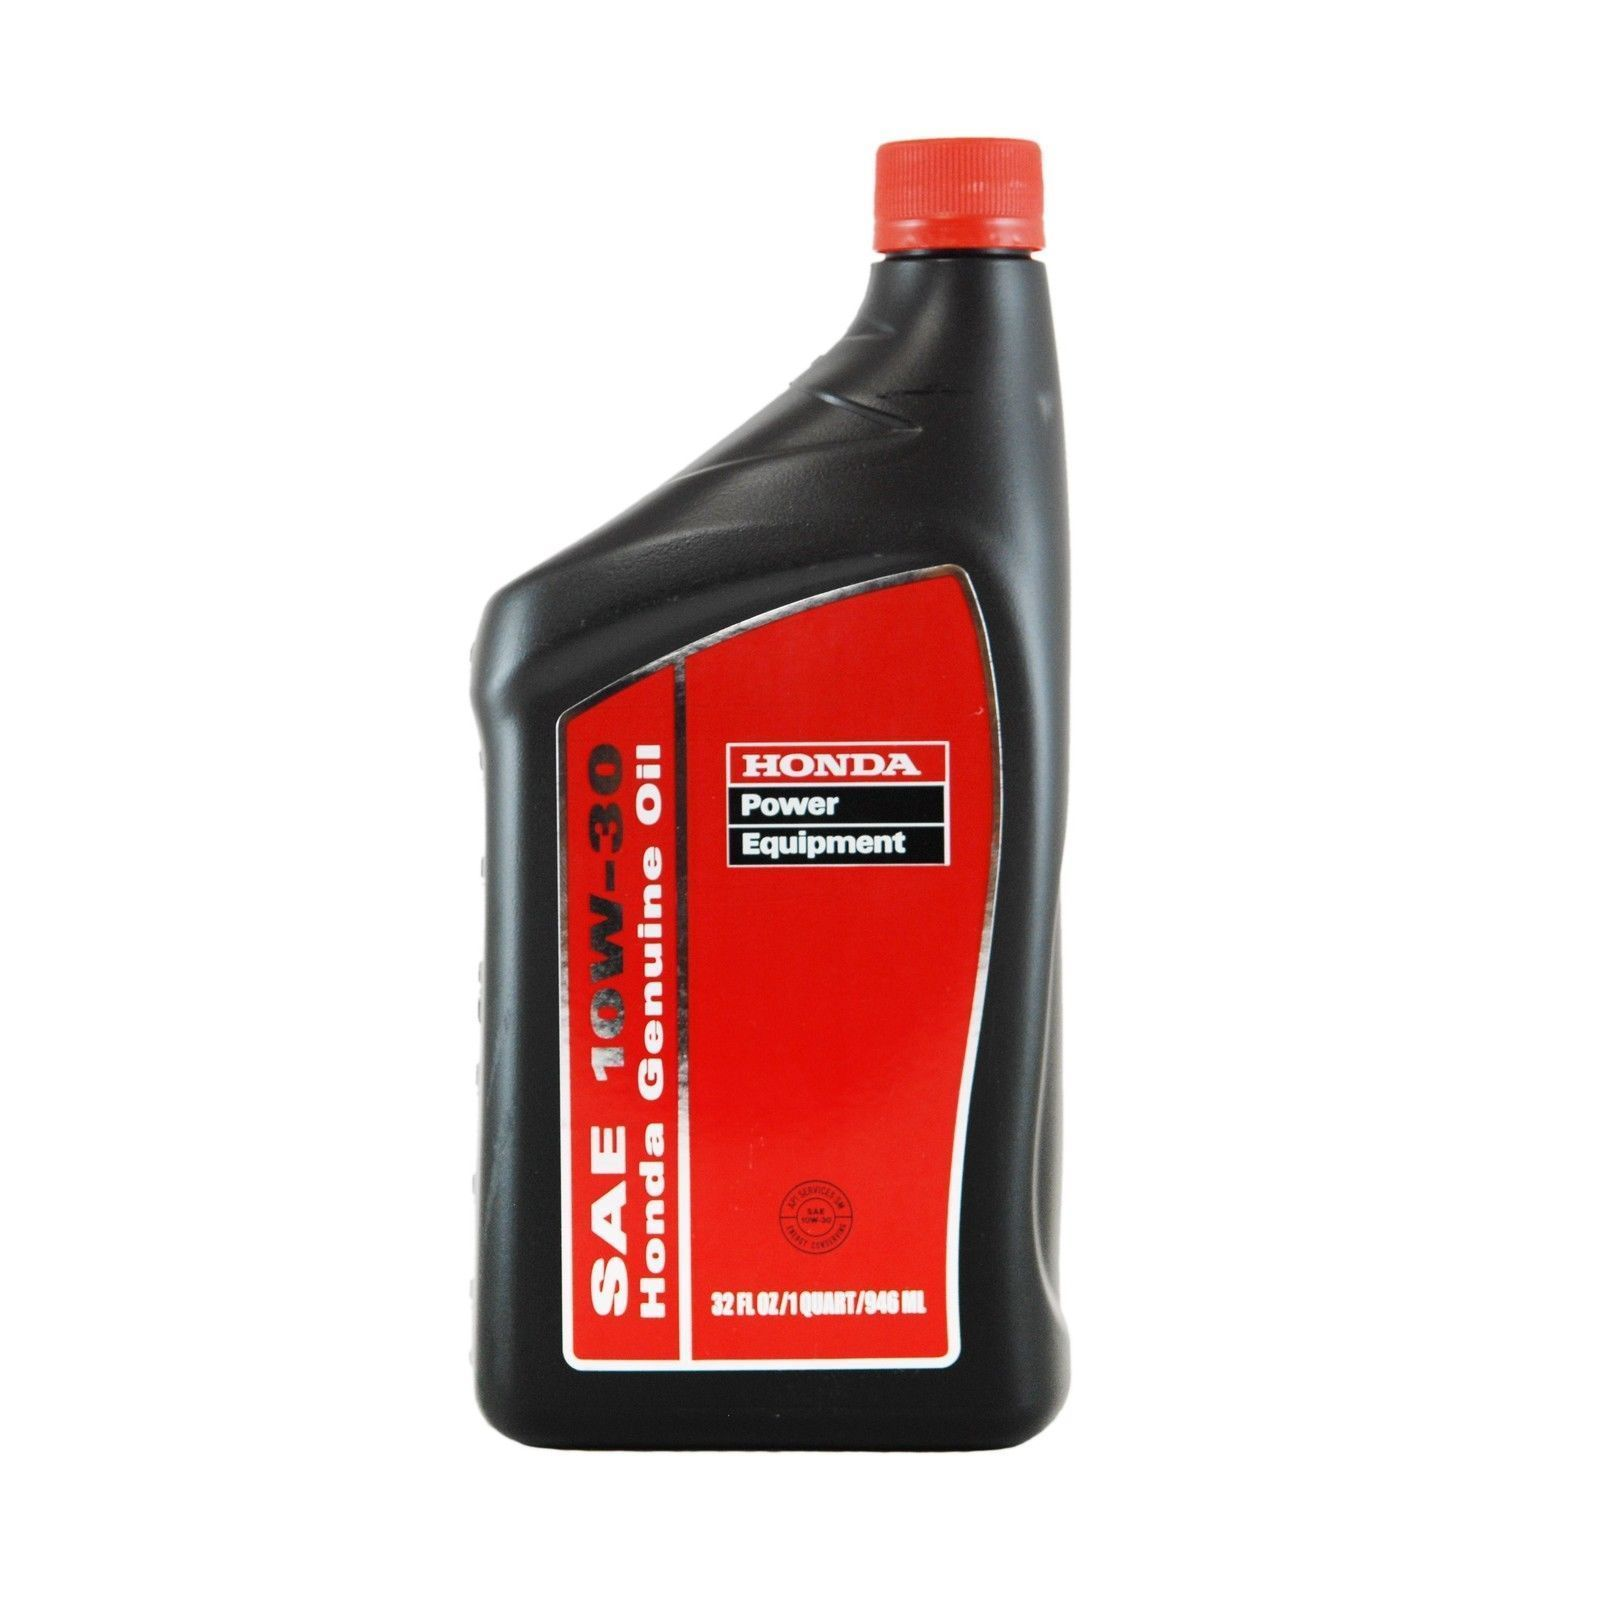 Awesome Amazing Honda 08207 Quart 10w30 Motor Oil Free Same Day Shipping 2017 2018 Mowers For Sale Motor Oil Honda